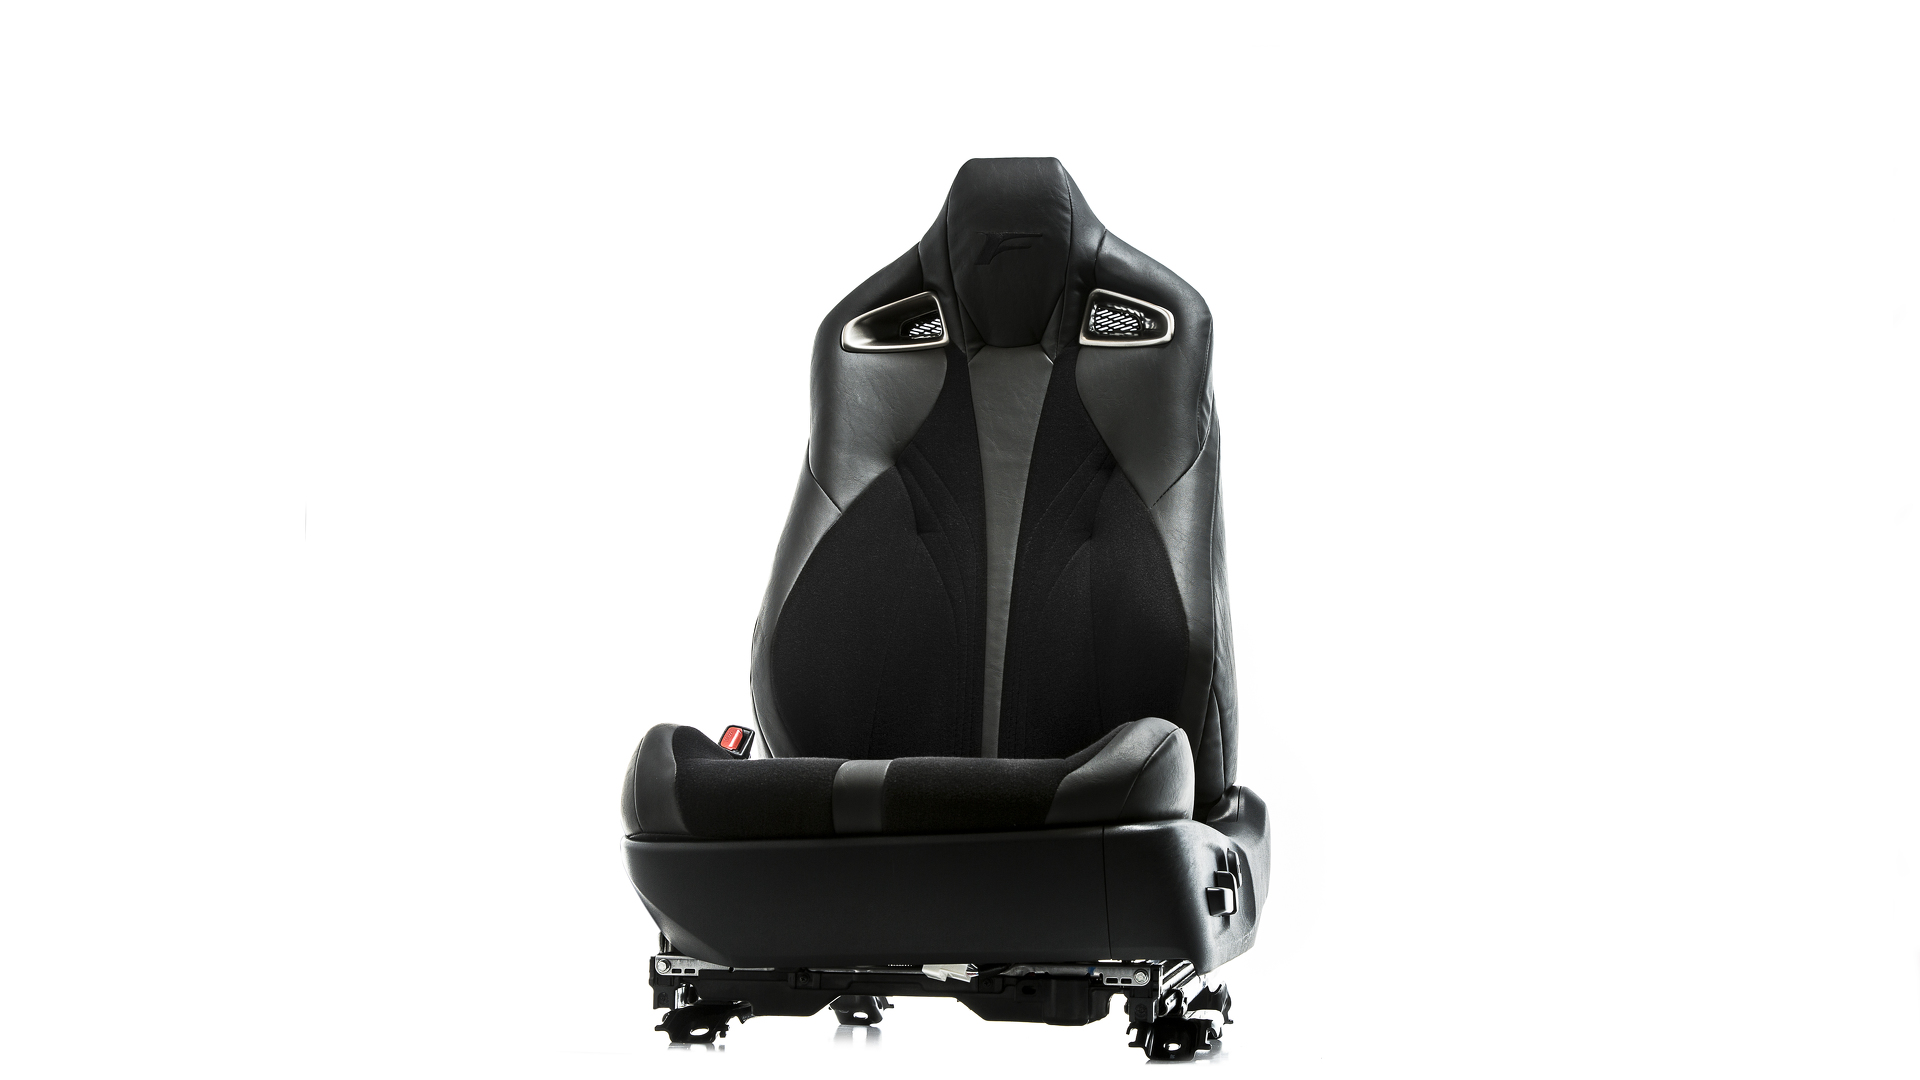 Lexus introduces new V-LCRO seating technology